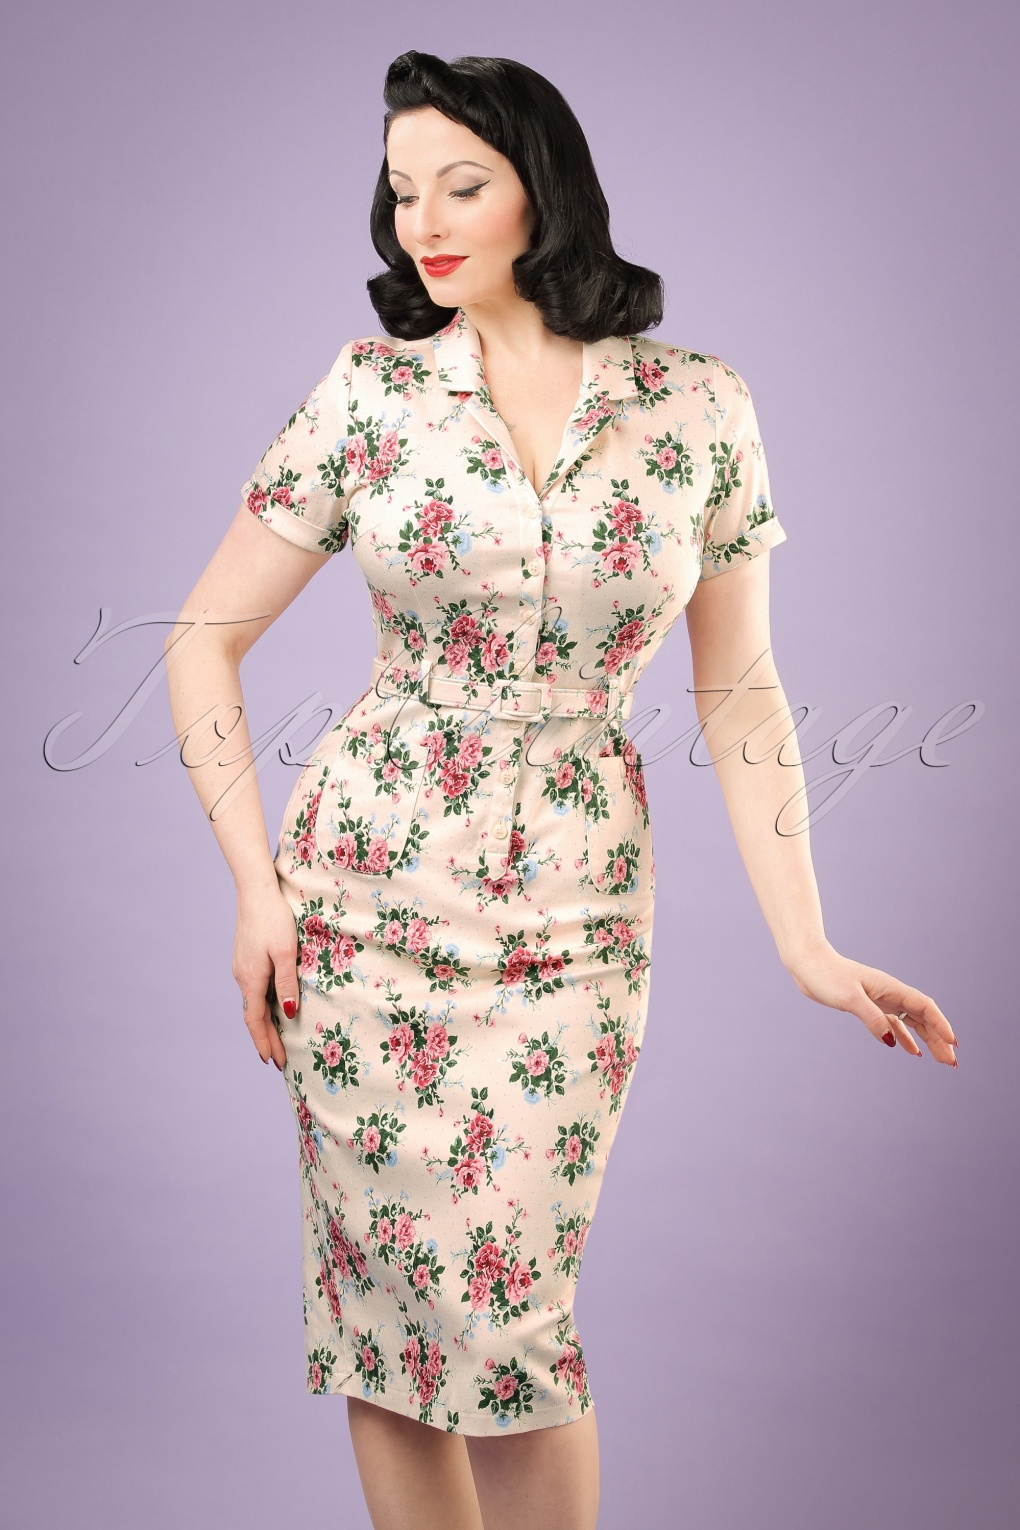 1940s Dresses and Clothing UK 40s Caterina Floral Pencil Dress in Beige £46.91 AT vintagedancer.com